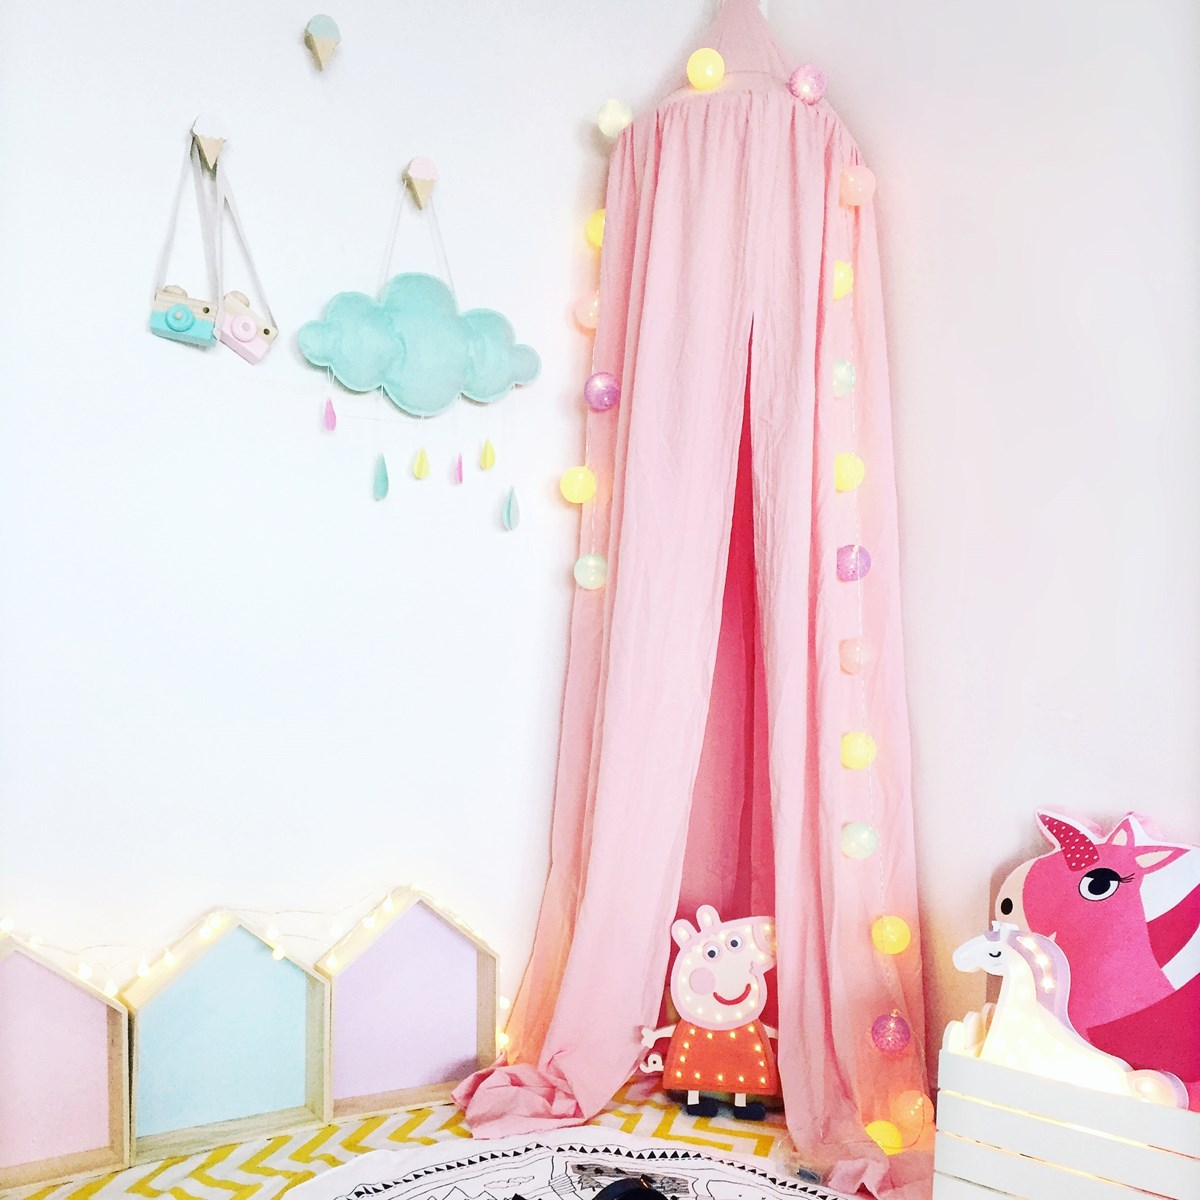 Crib tents for babies - Cotton Kids Girls Mantle N Ets Tents Baby Tent Crib Netting Palace Children Room Bed